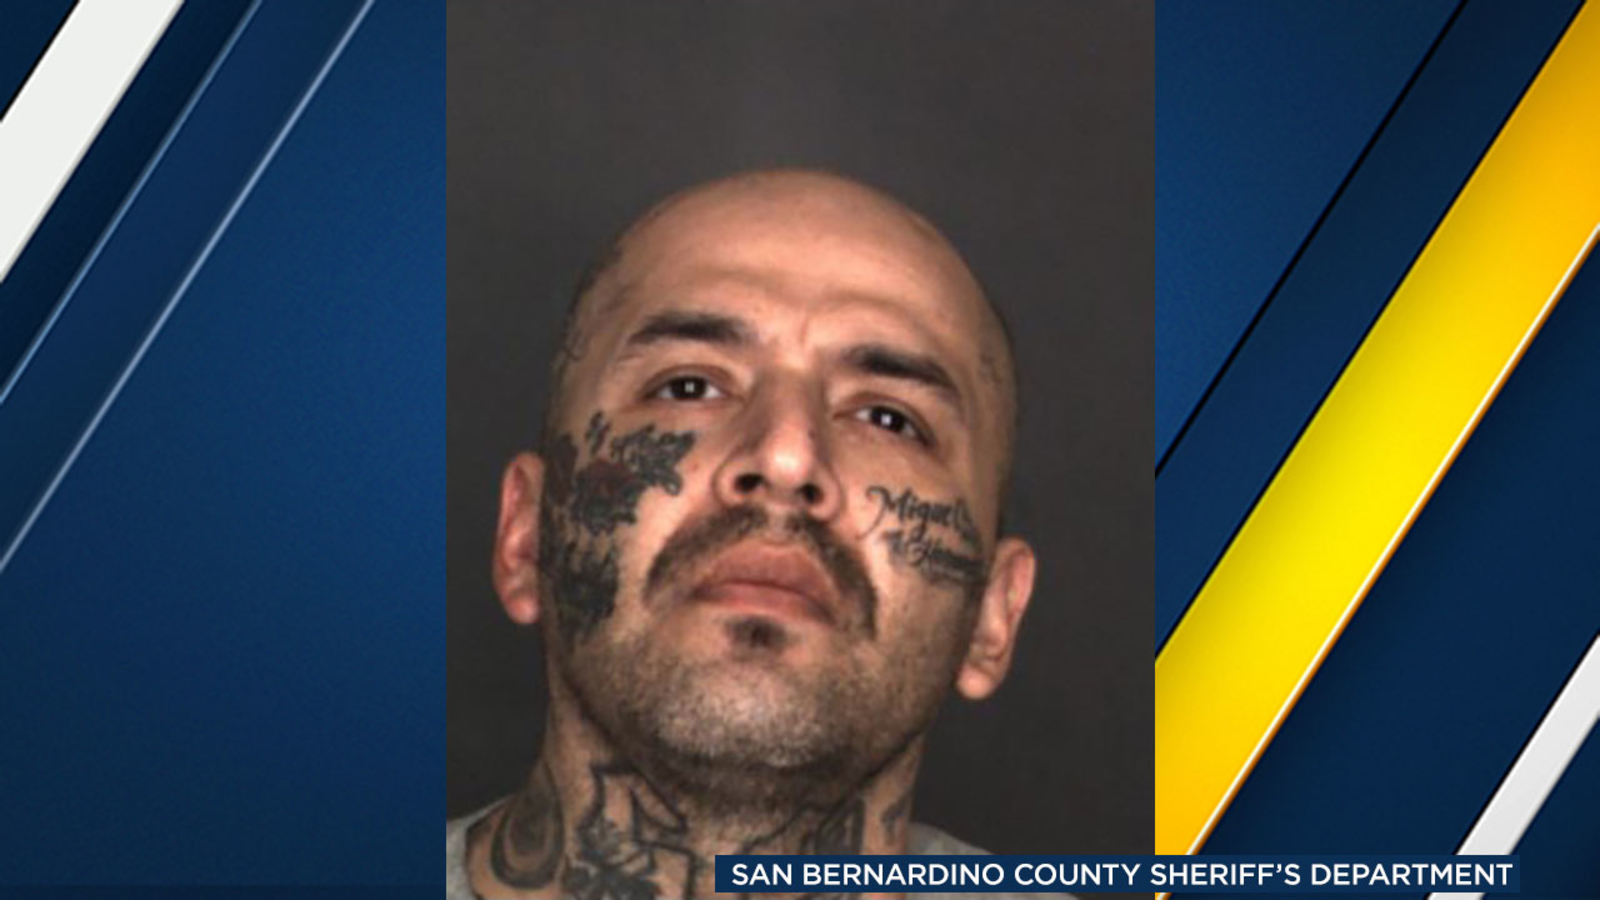 San Bernardino County man considered 'armed and dangerous' wanted on felony domestic violence warrant